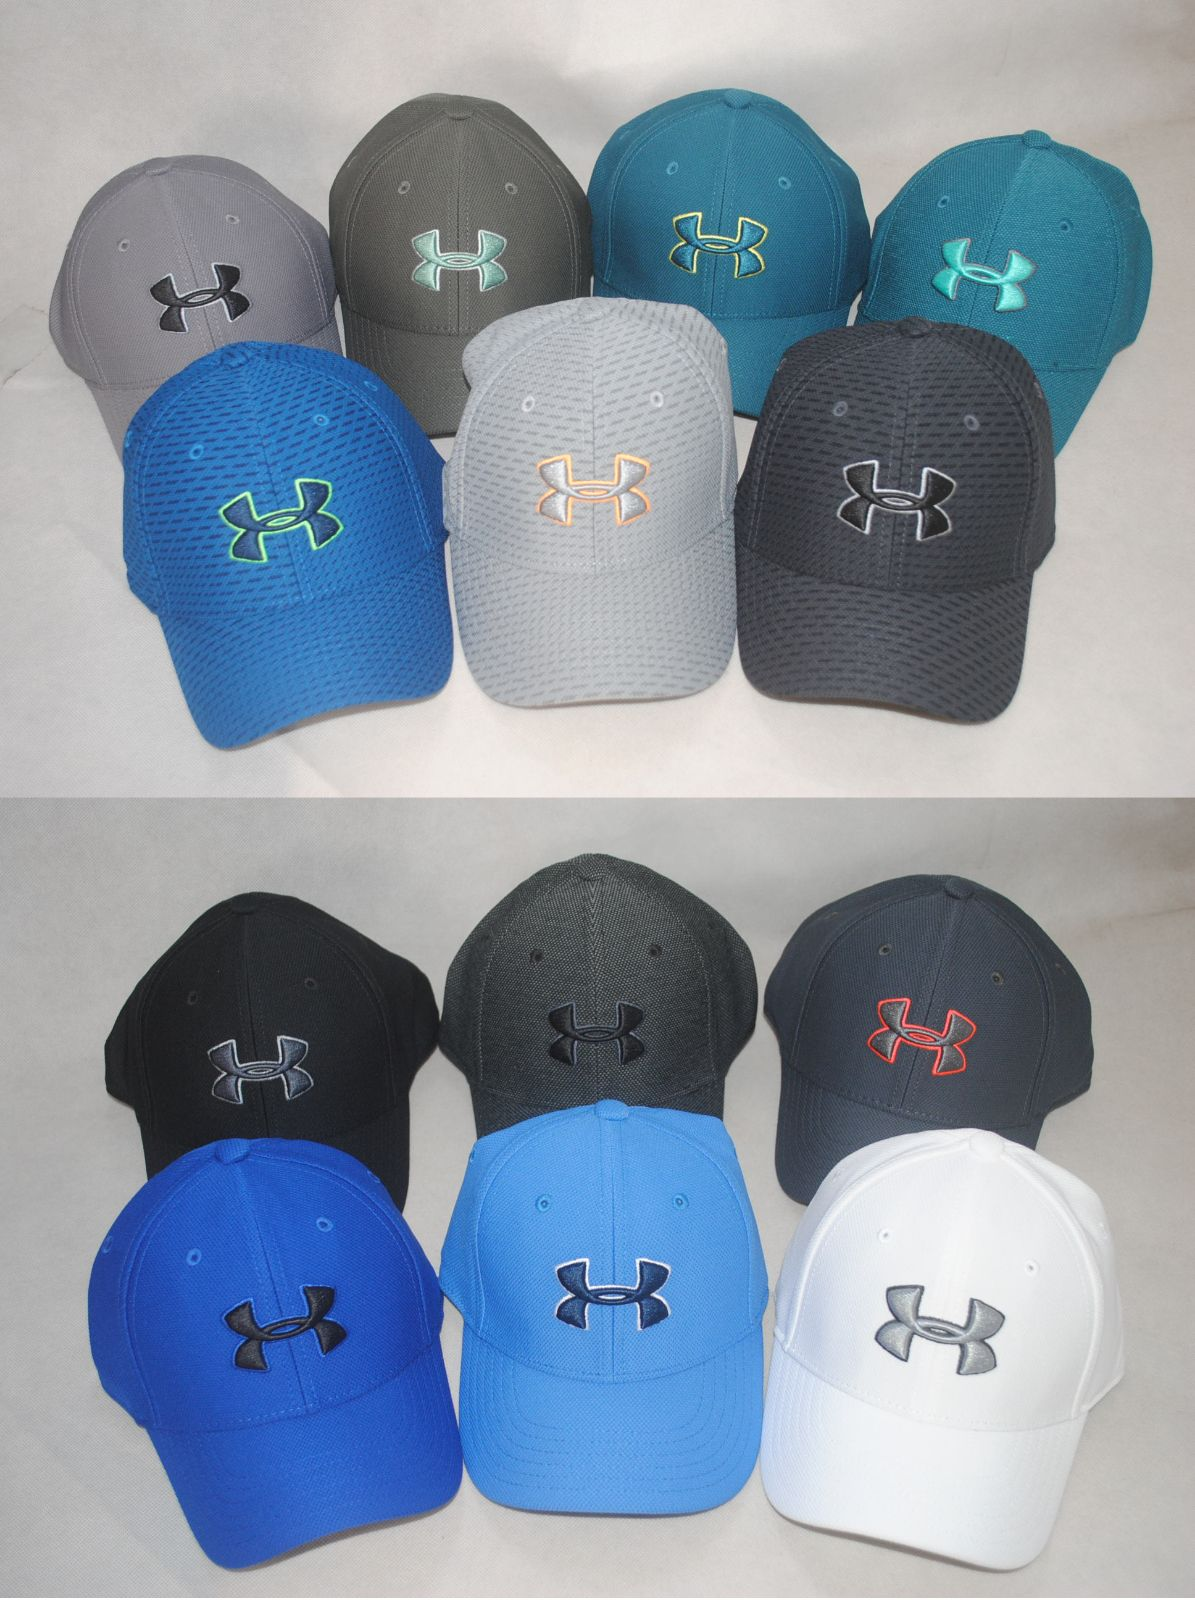 3588586f8b3 Hats 57884  New Under Armour Youth Boys Ua Blitzing 3.0 Cap 1305457 Stretch  Fit Baseball Hat -  BUY IT NOW ONLY   16.19 on  eBay  under  armour  youth  ...